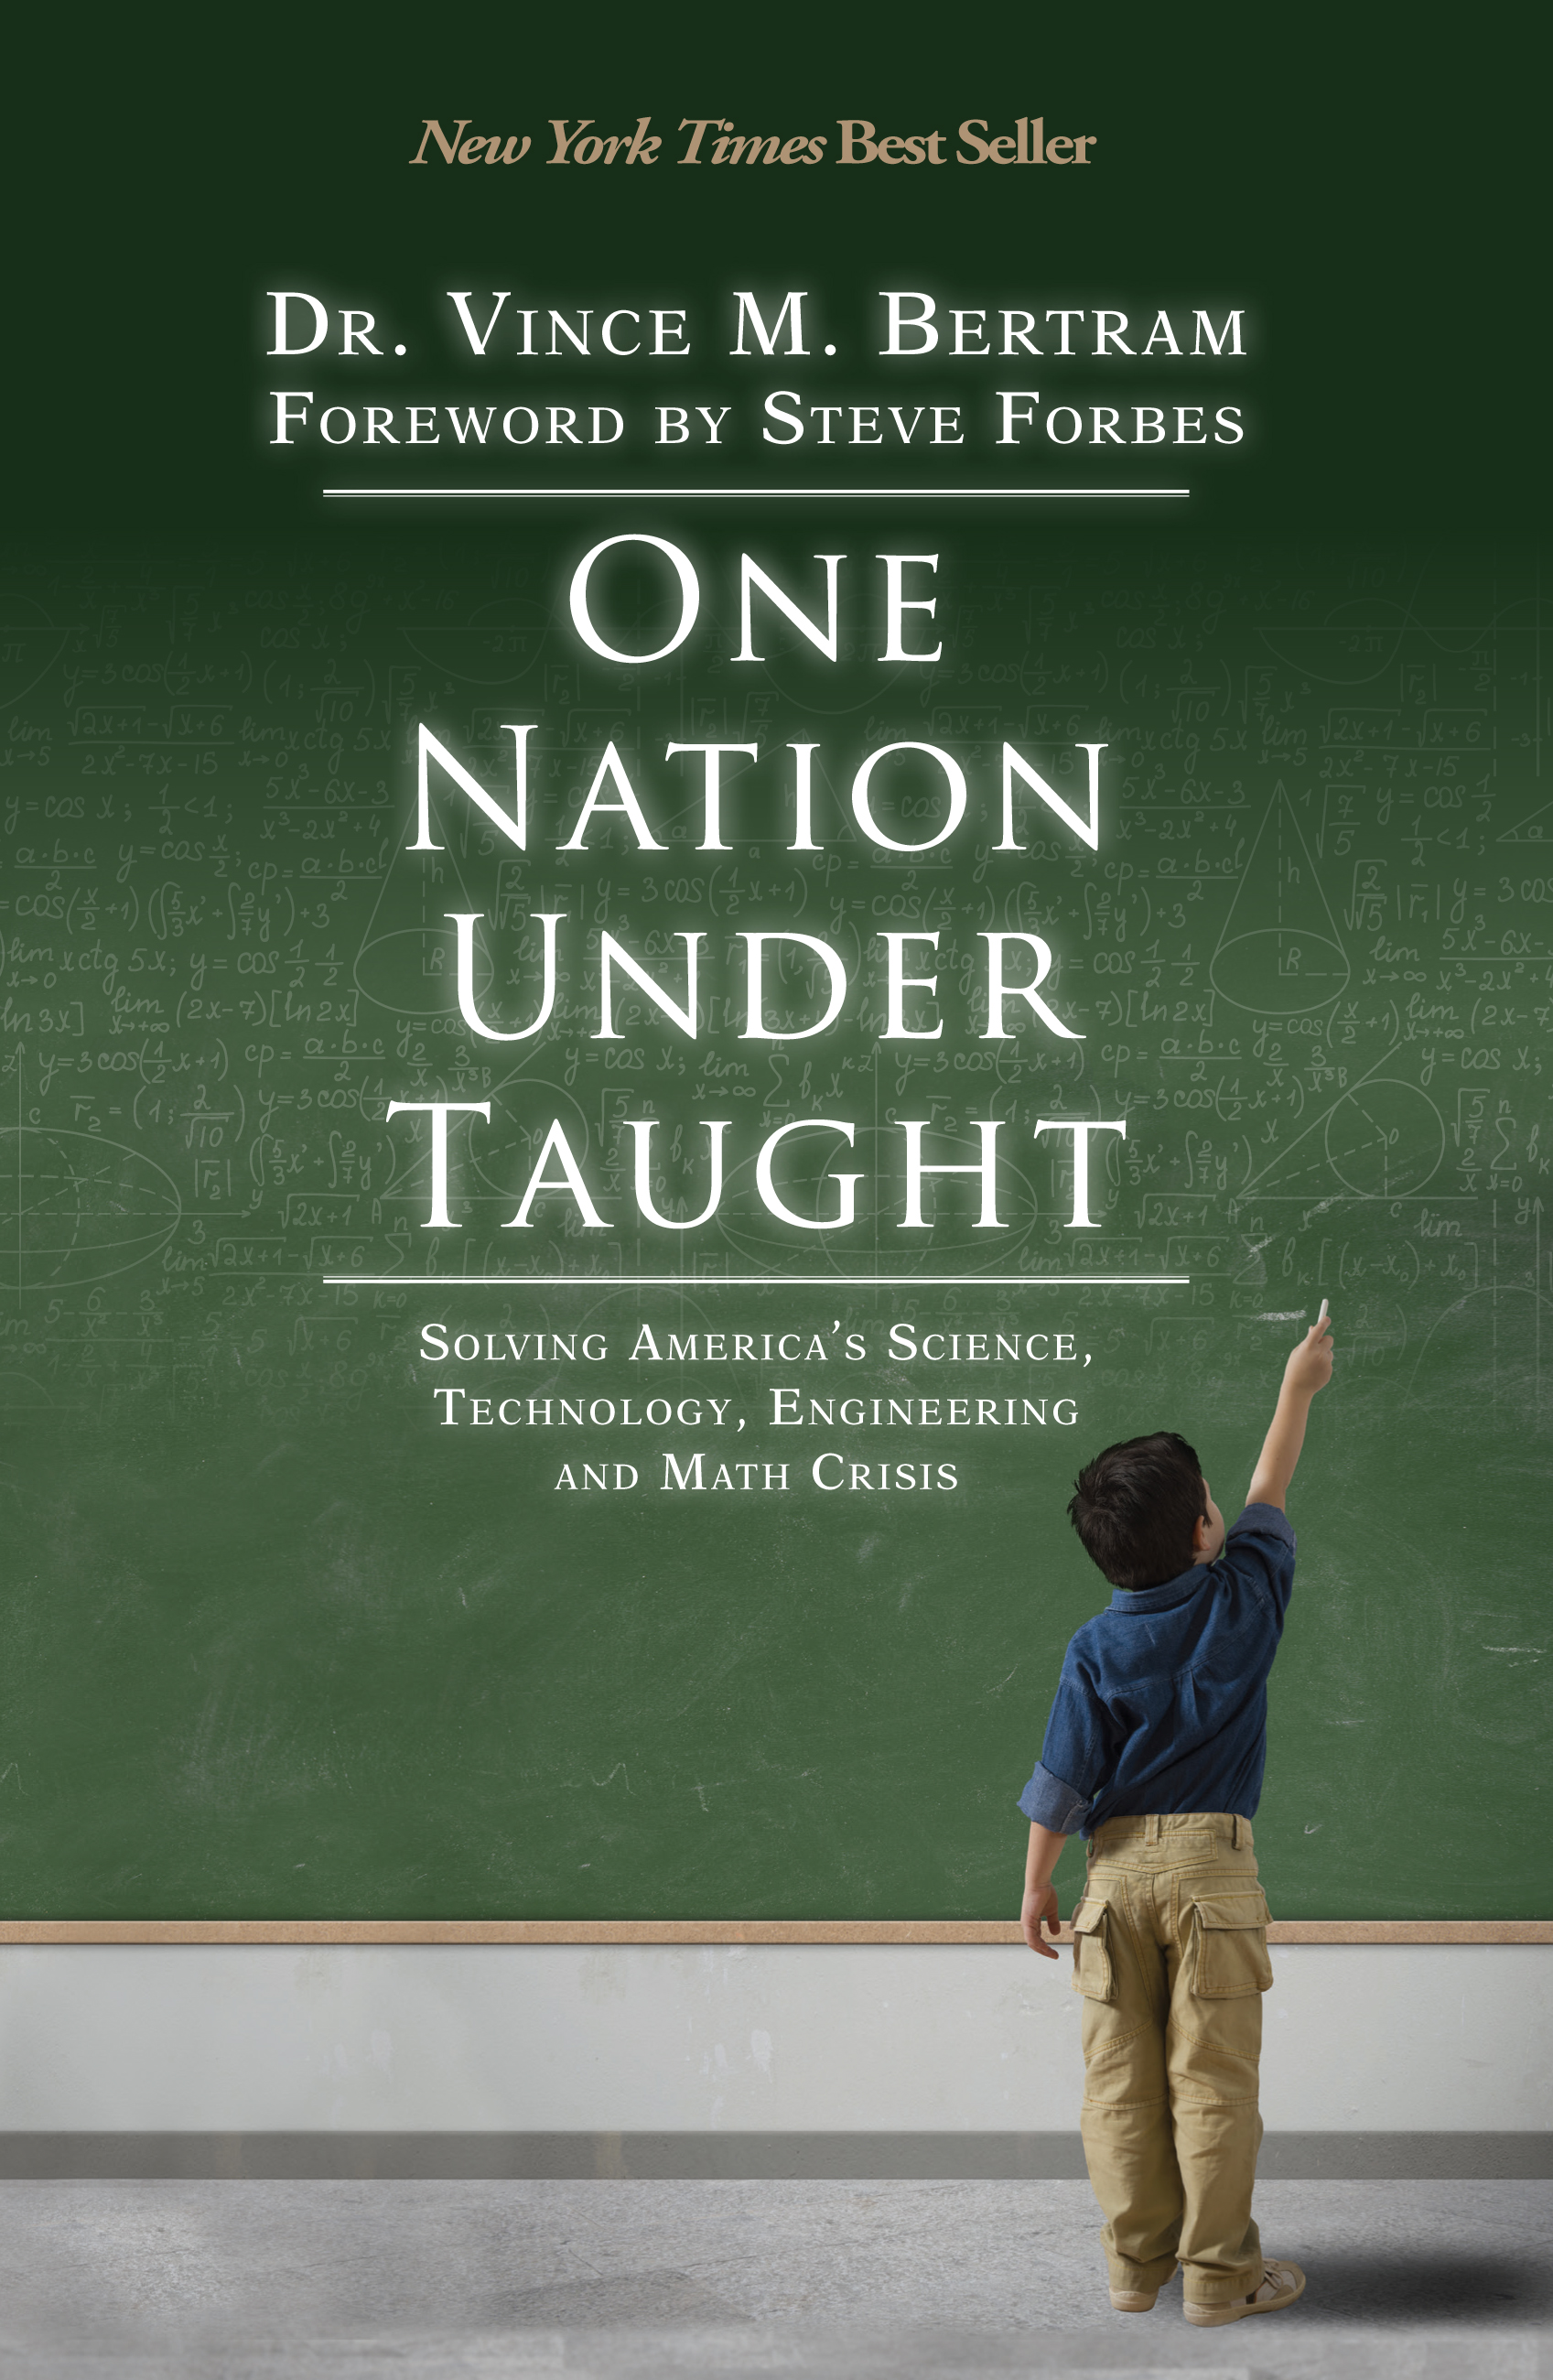 One Nation Under Taught